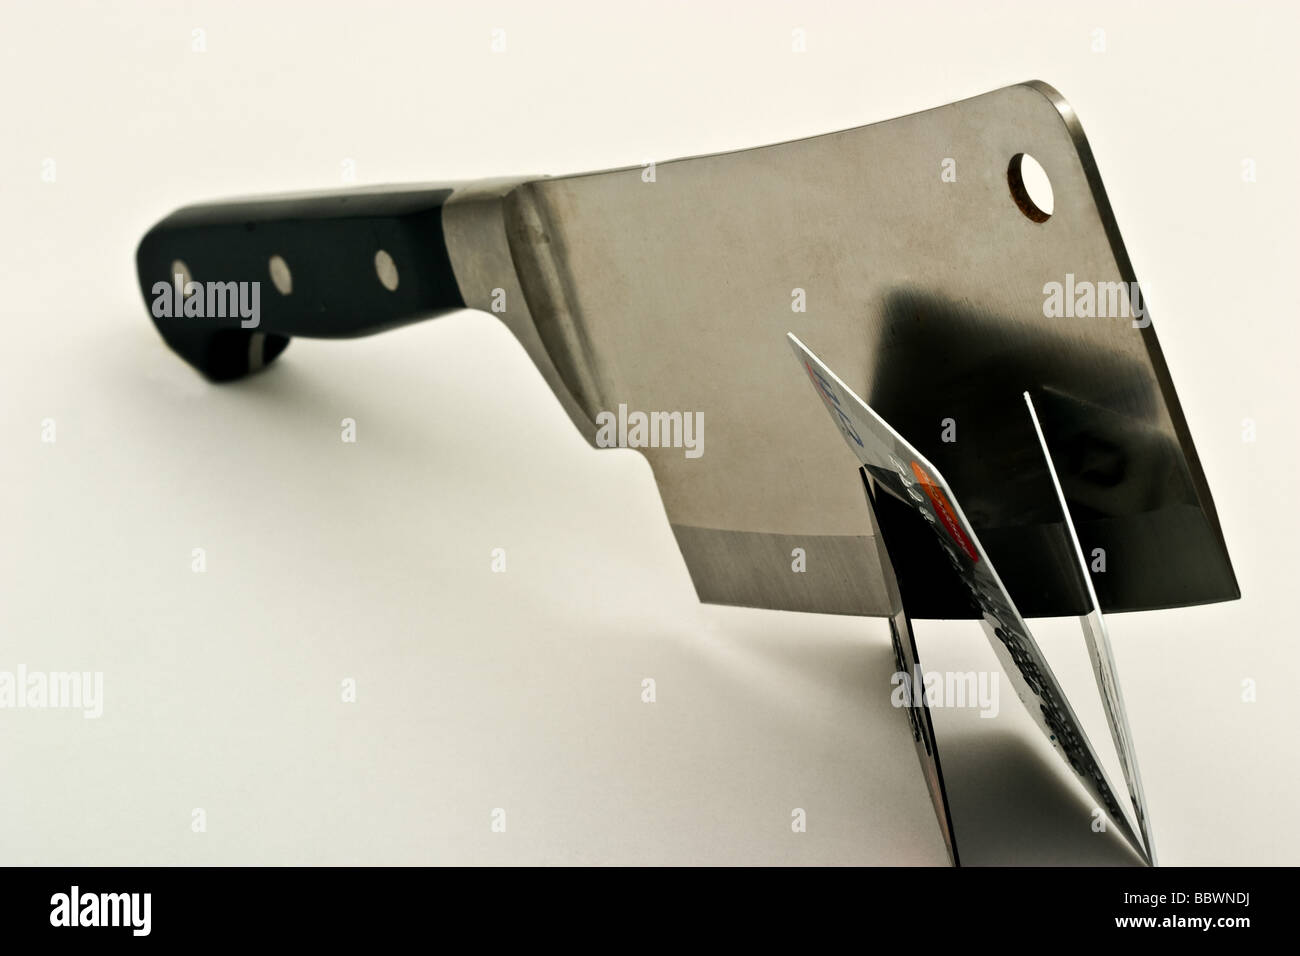 Large metal meat cleaver cutting three credit cards - Stock Image